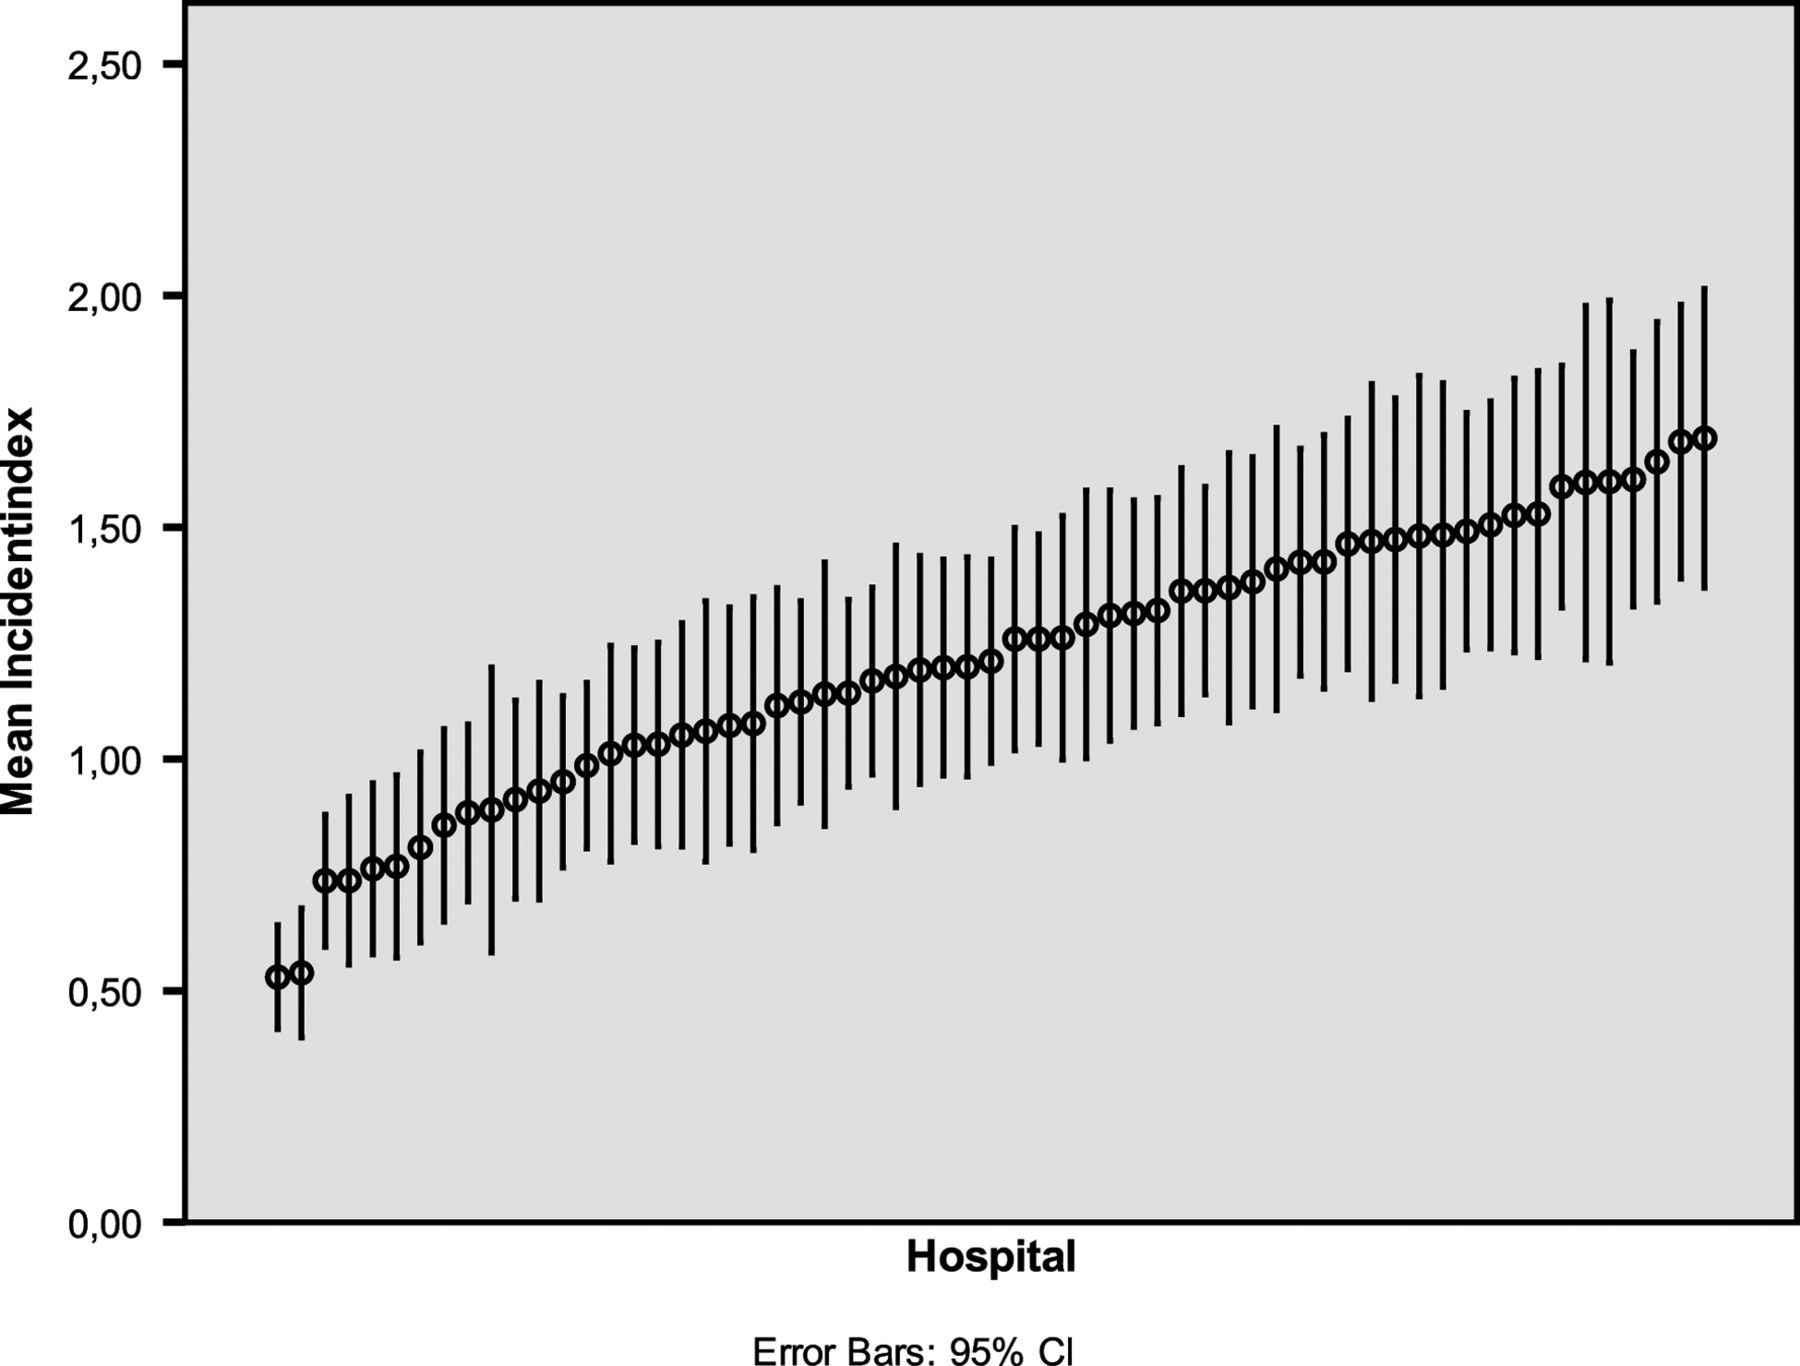 The Patient-Reported Incident in Hospital Instrument (PRIH